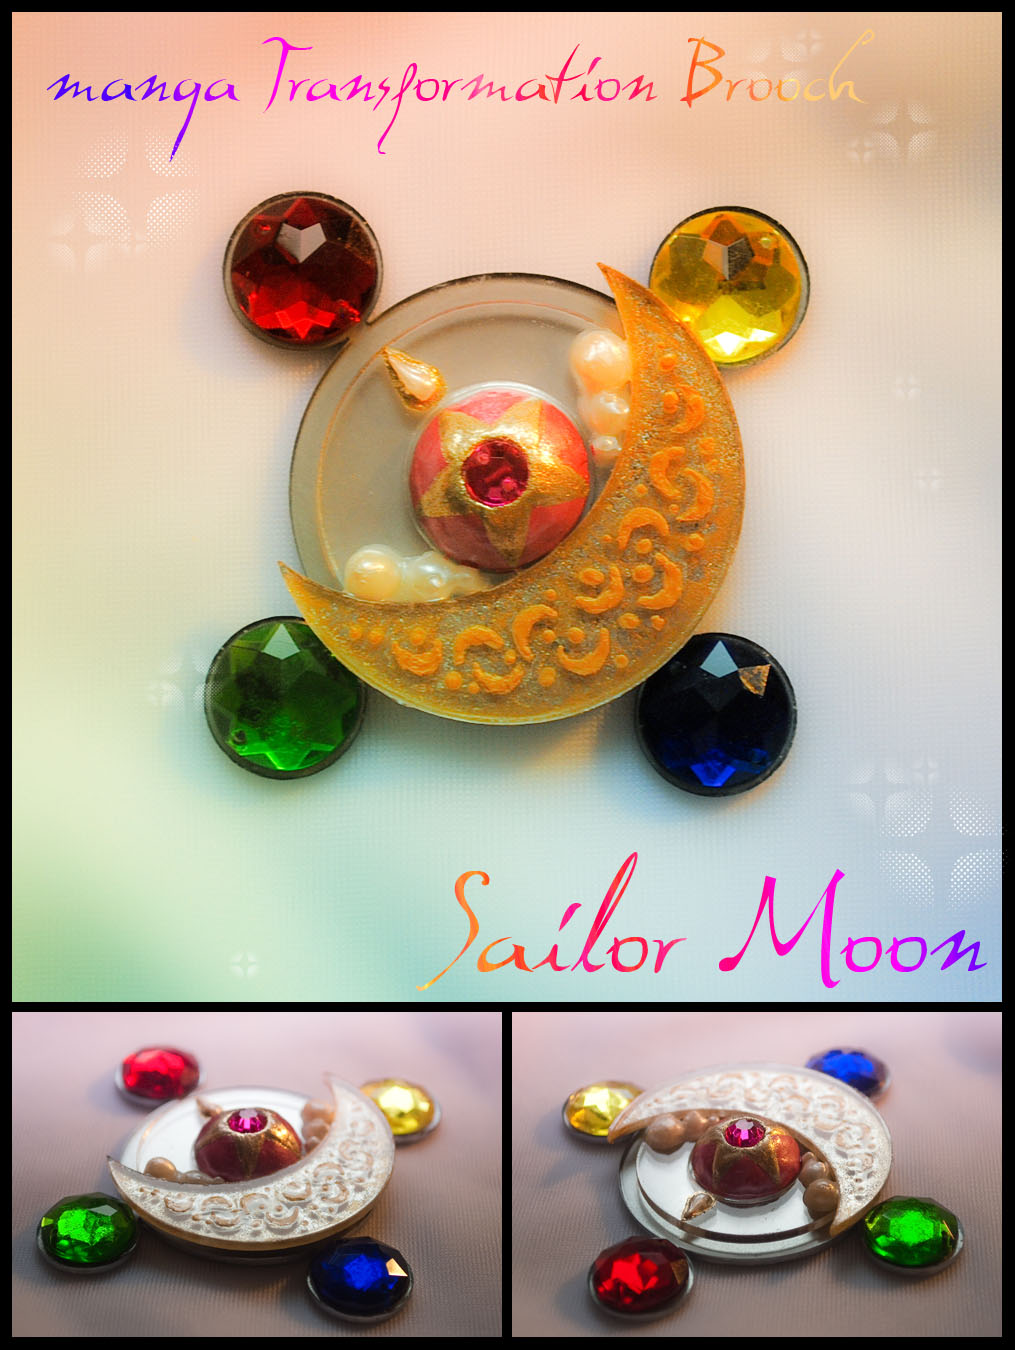 Props: Sailor Moon - manga Transformation Brooch by Hybryda